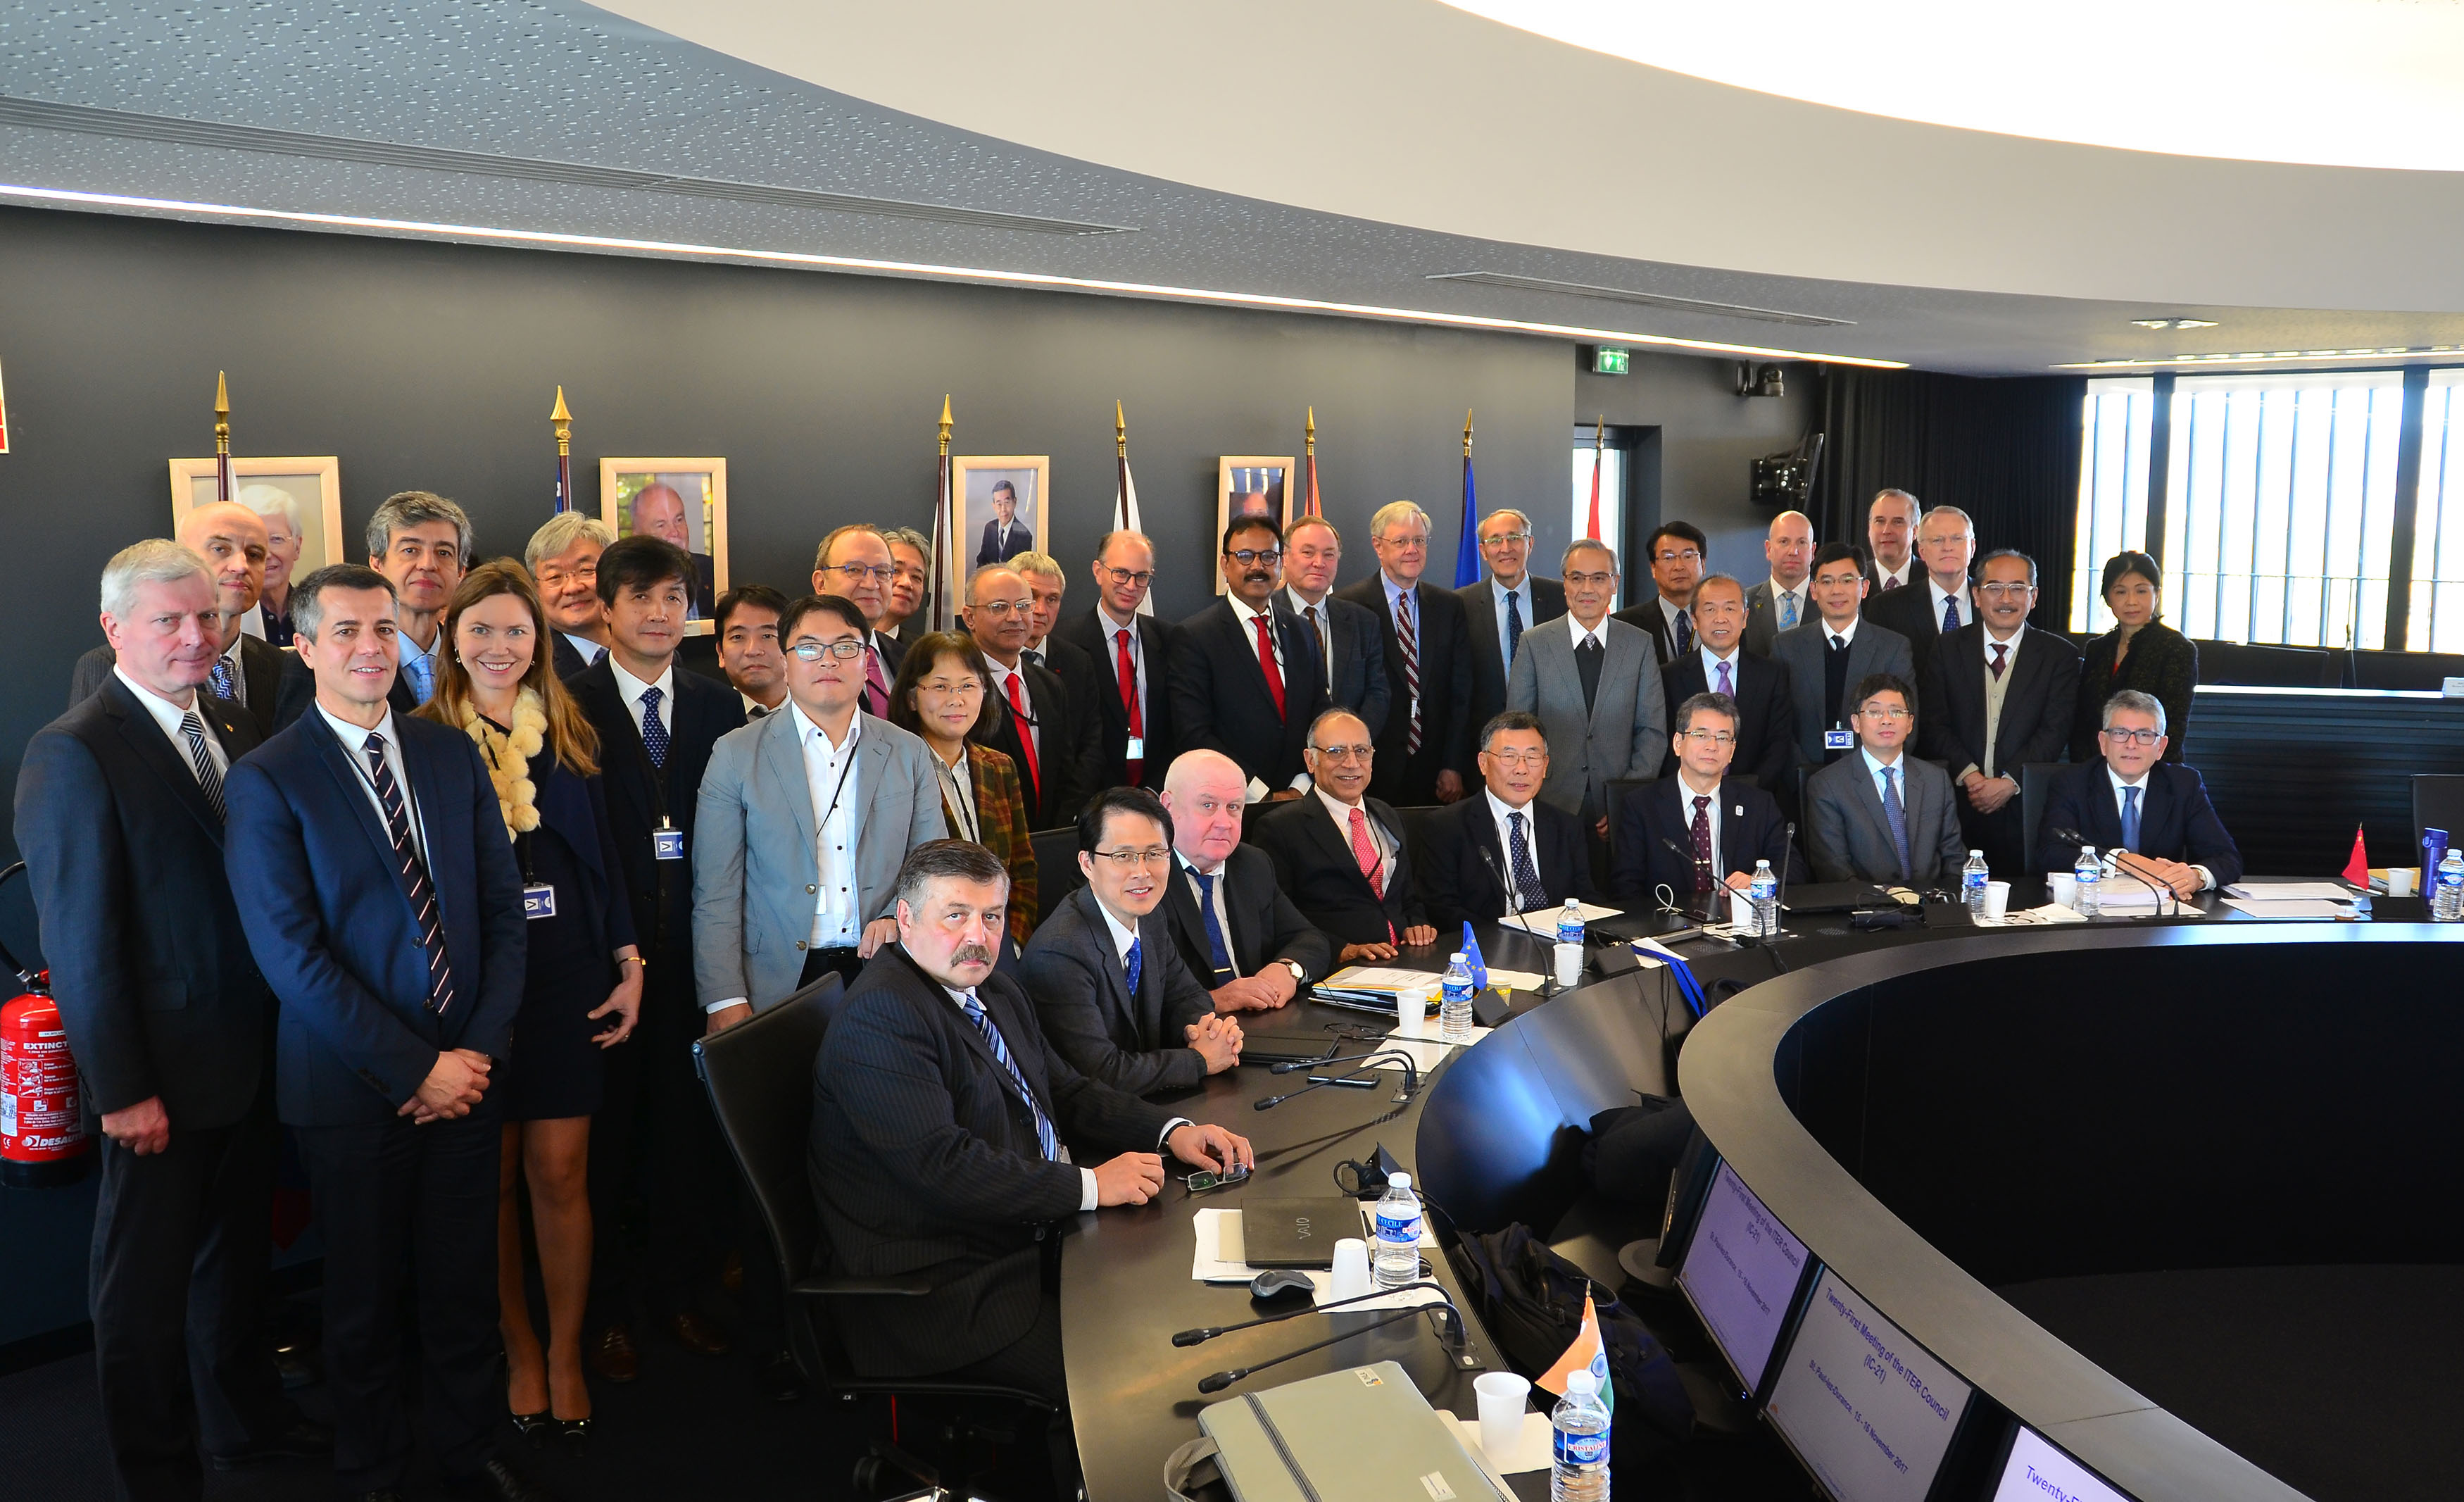 21st ITER Council affirms steady, measurable project progress